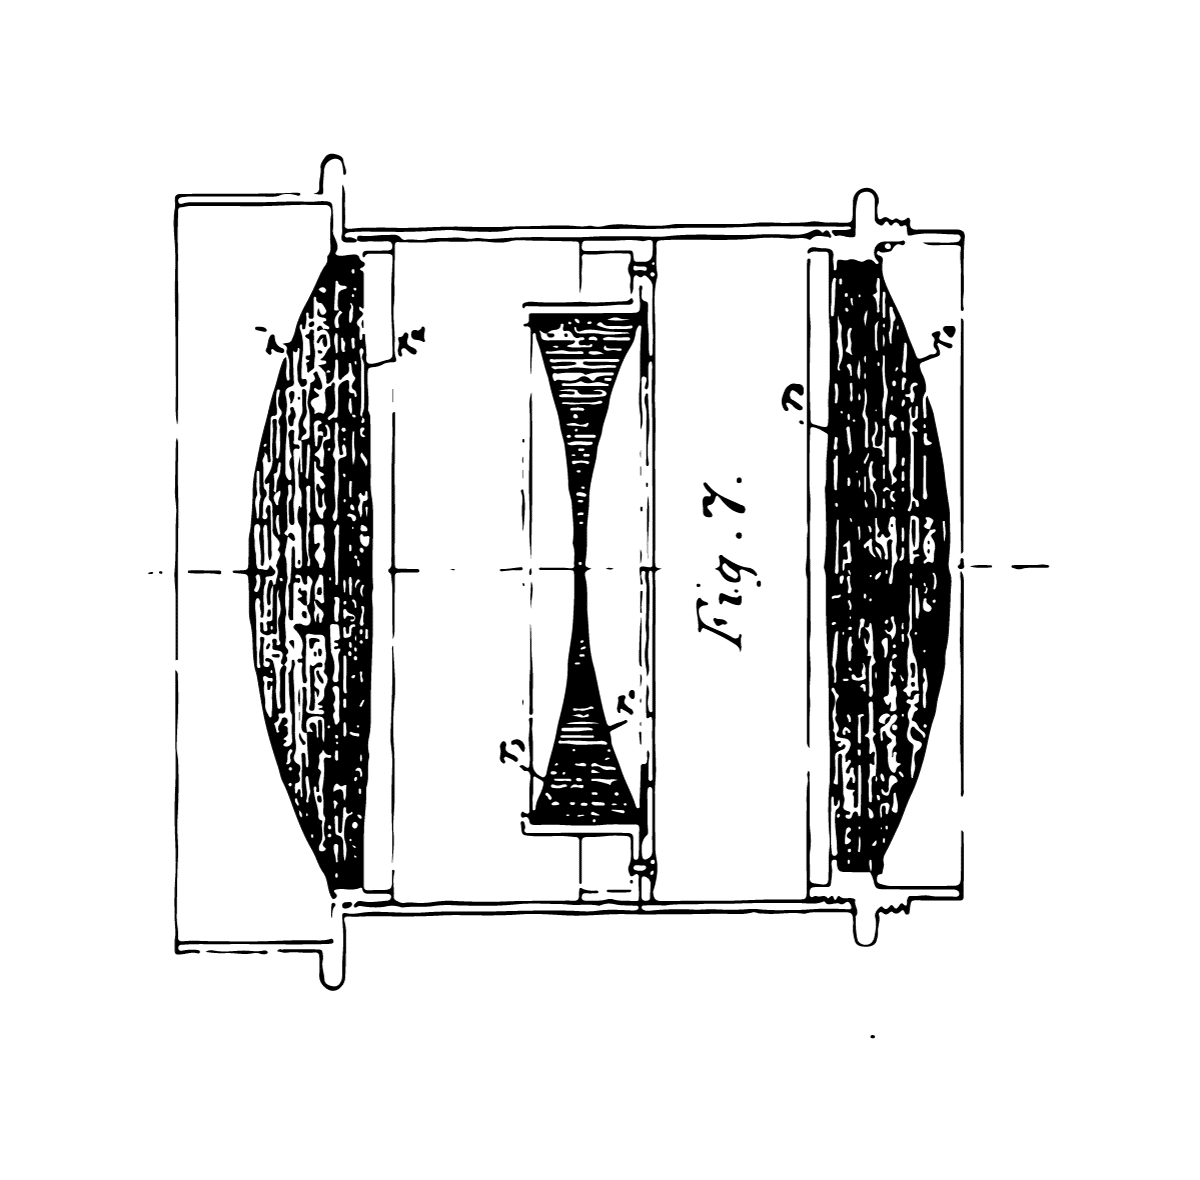 Cooke Triplet Diagram from Patent